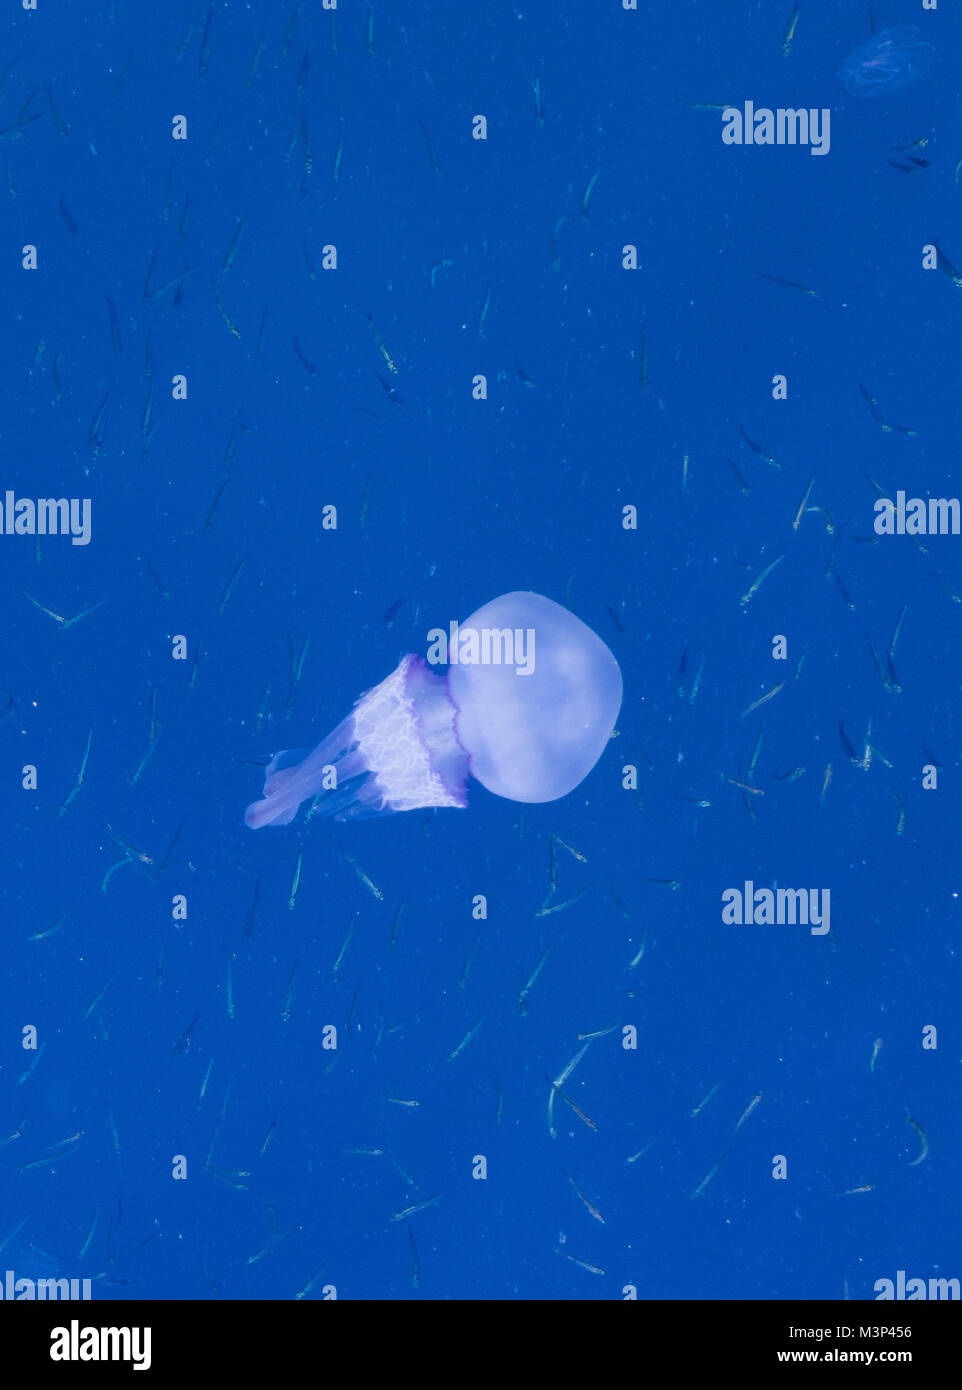 Beautiful glowing blue jellyfish in blue water sea with little fish background - Stock Image